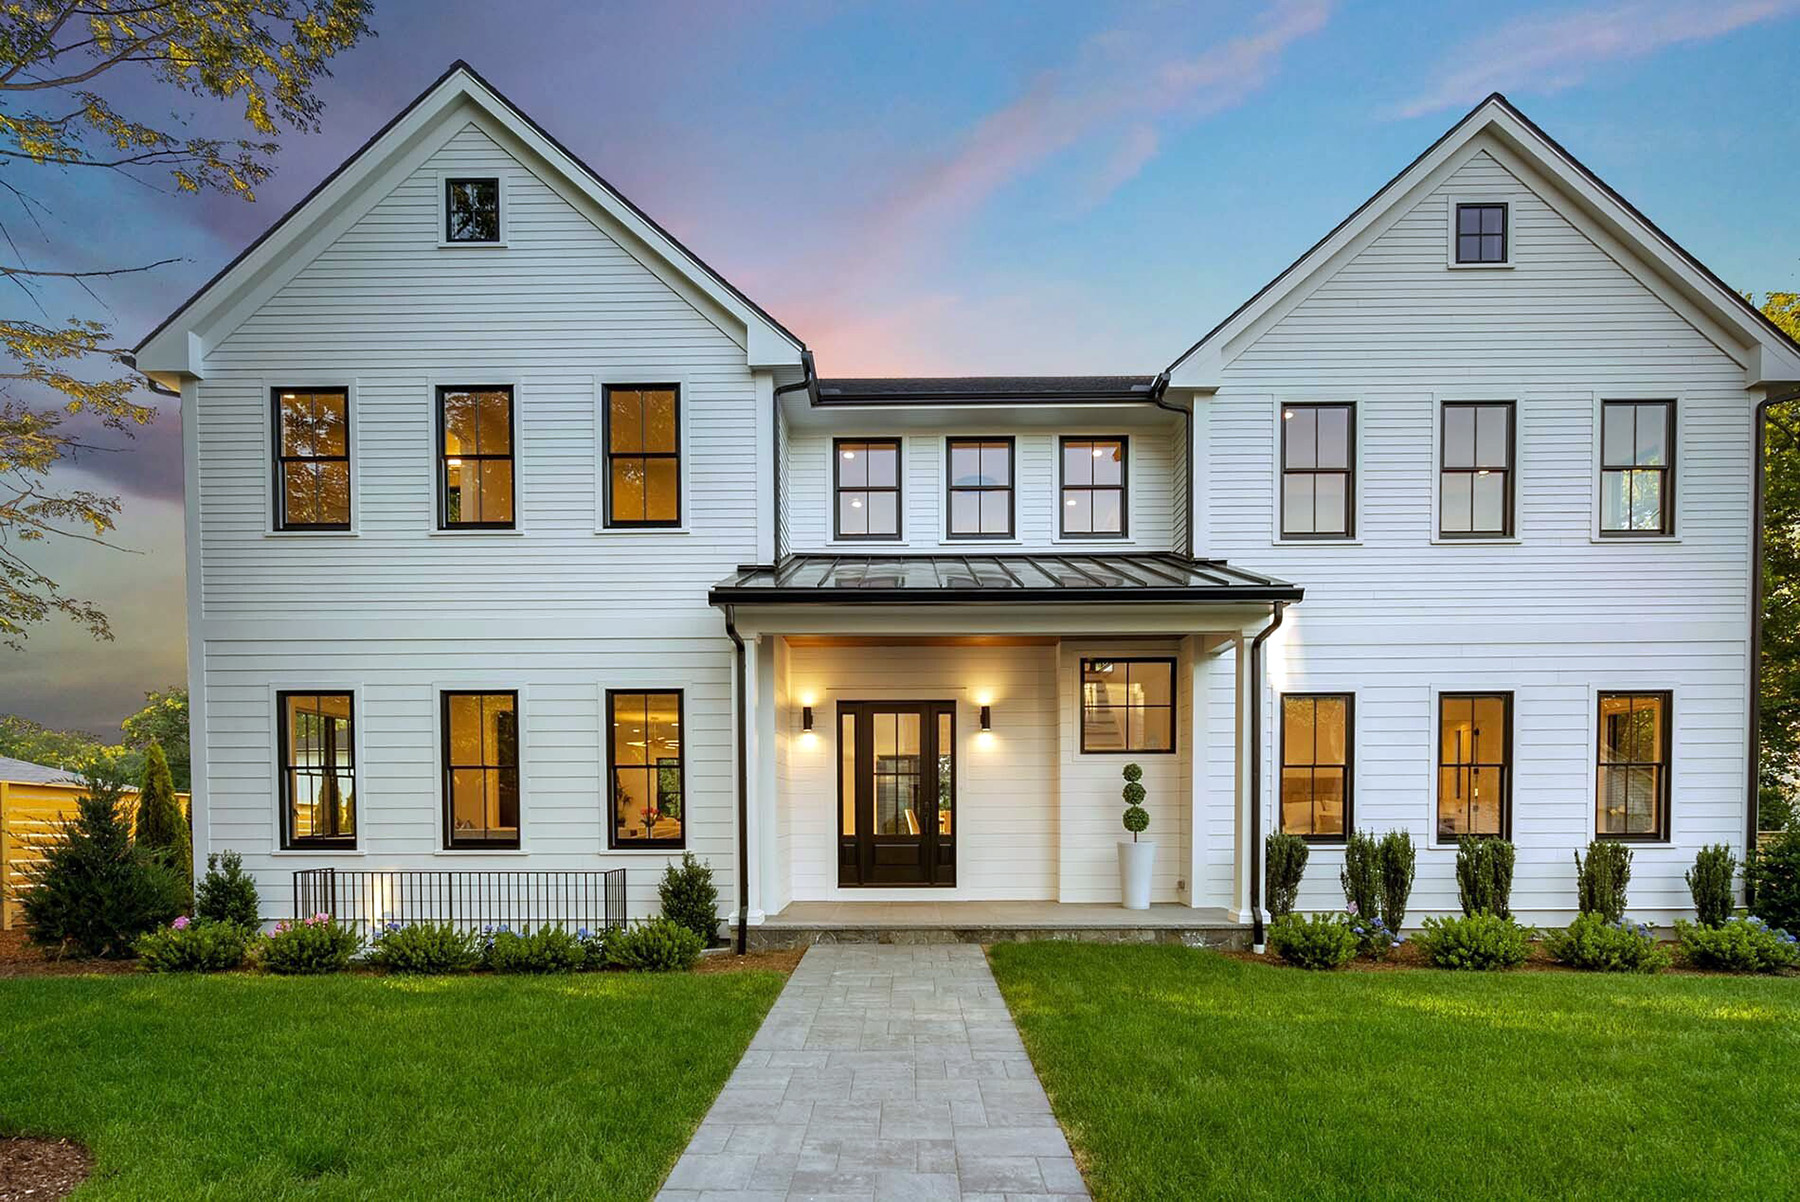 Transitional style home featuring white siding with black windows.